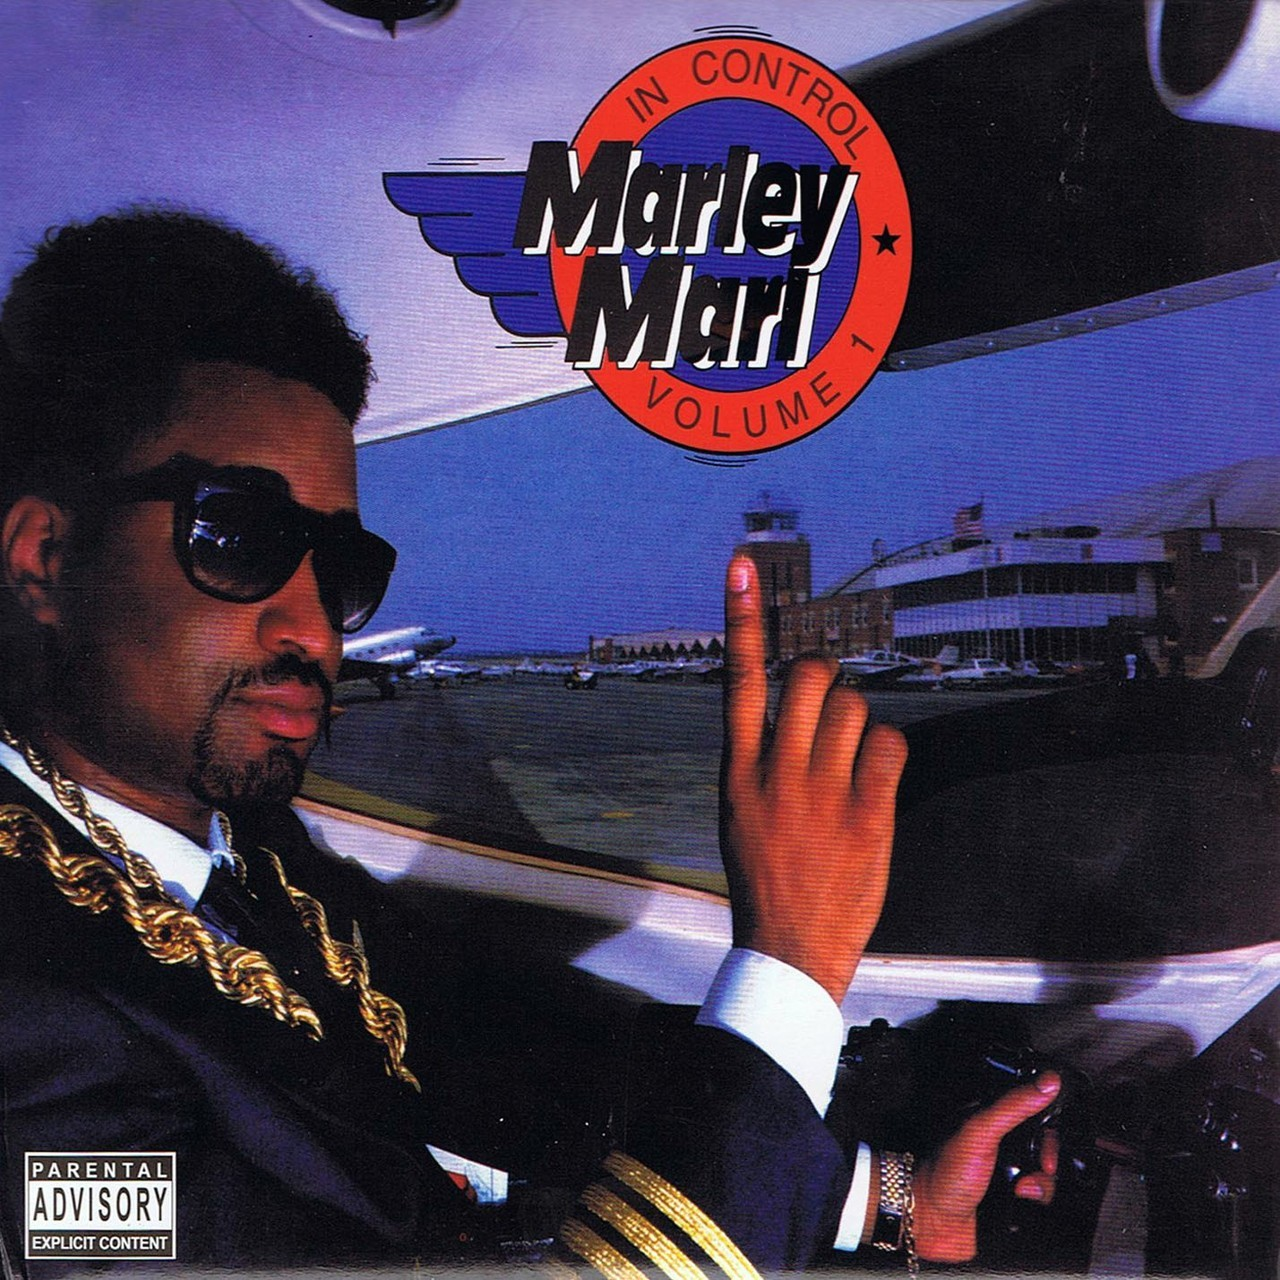 BACK IN THE DAY |9/1/88| Marley Marl's In Control, Volume 1, was released on Cold Chillin' Records.